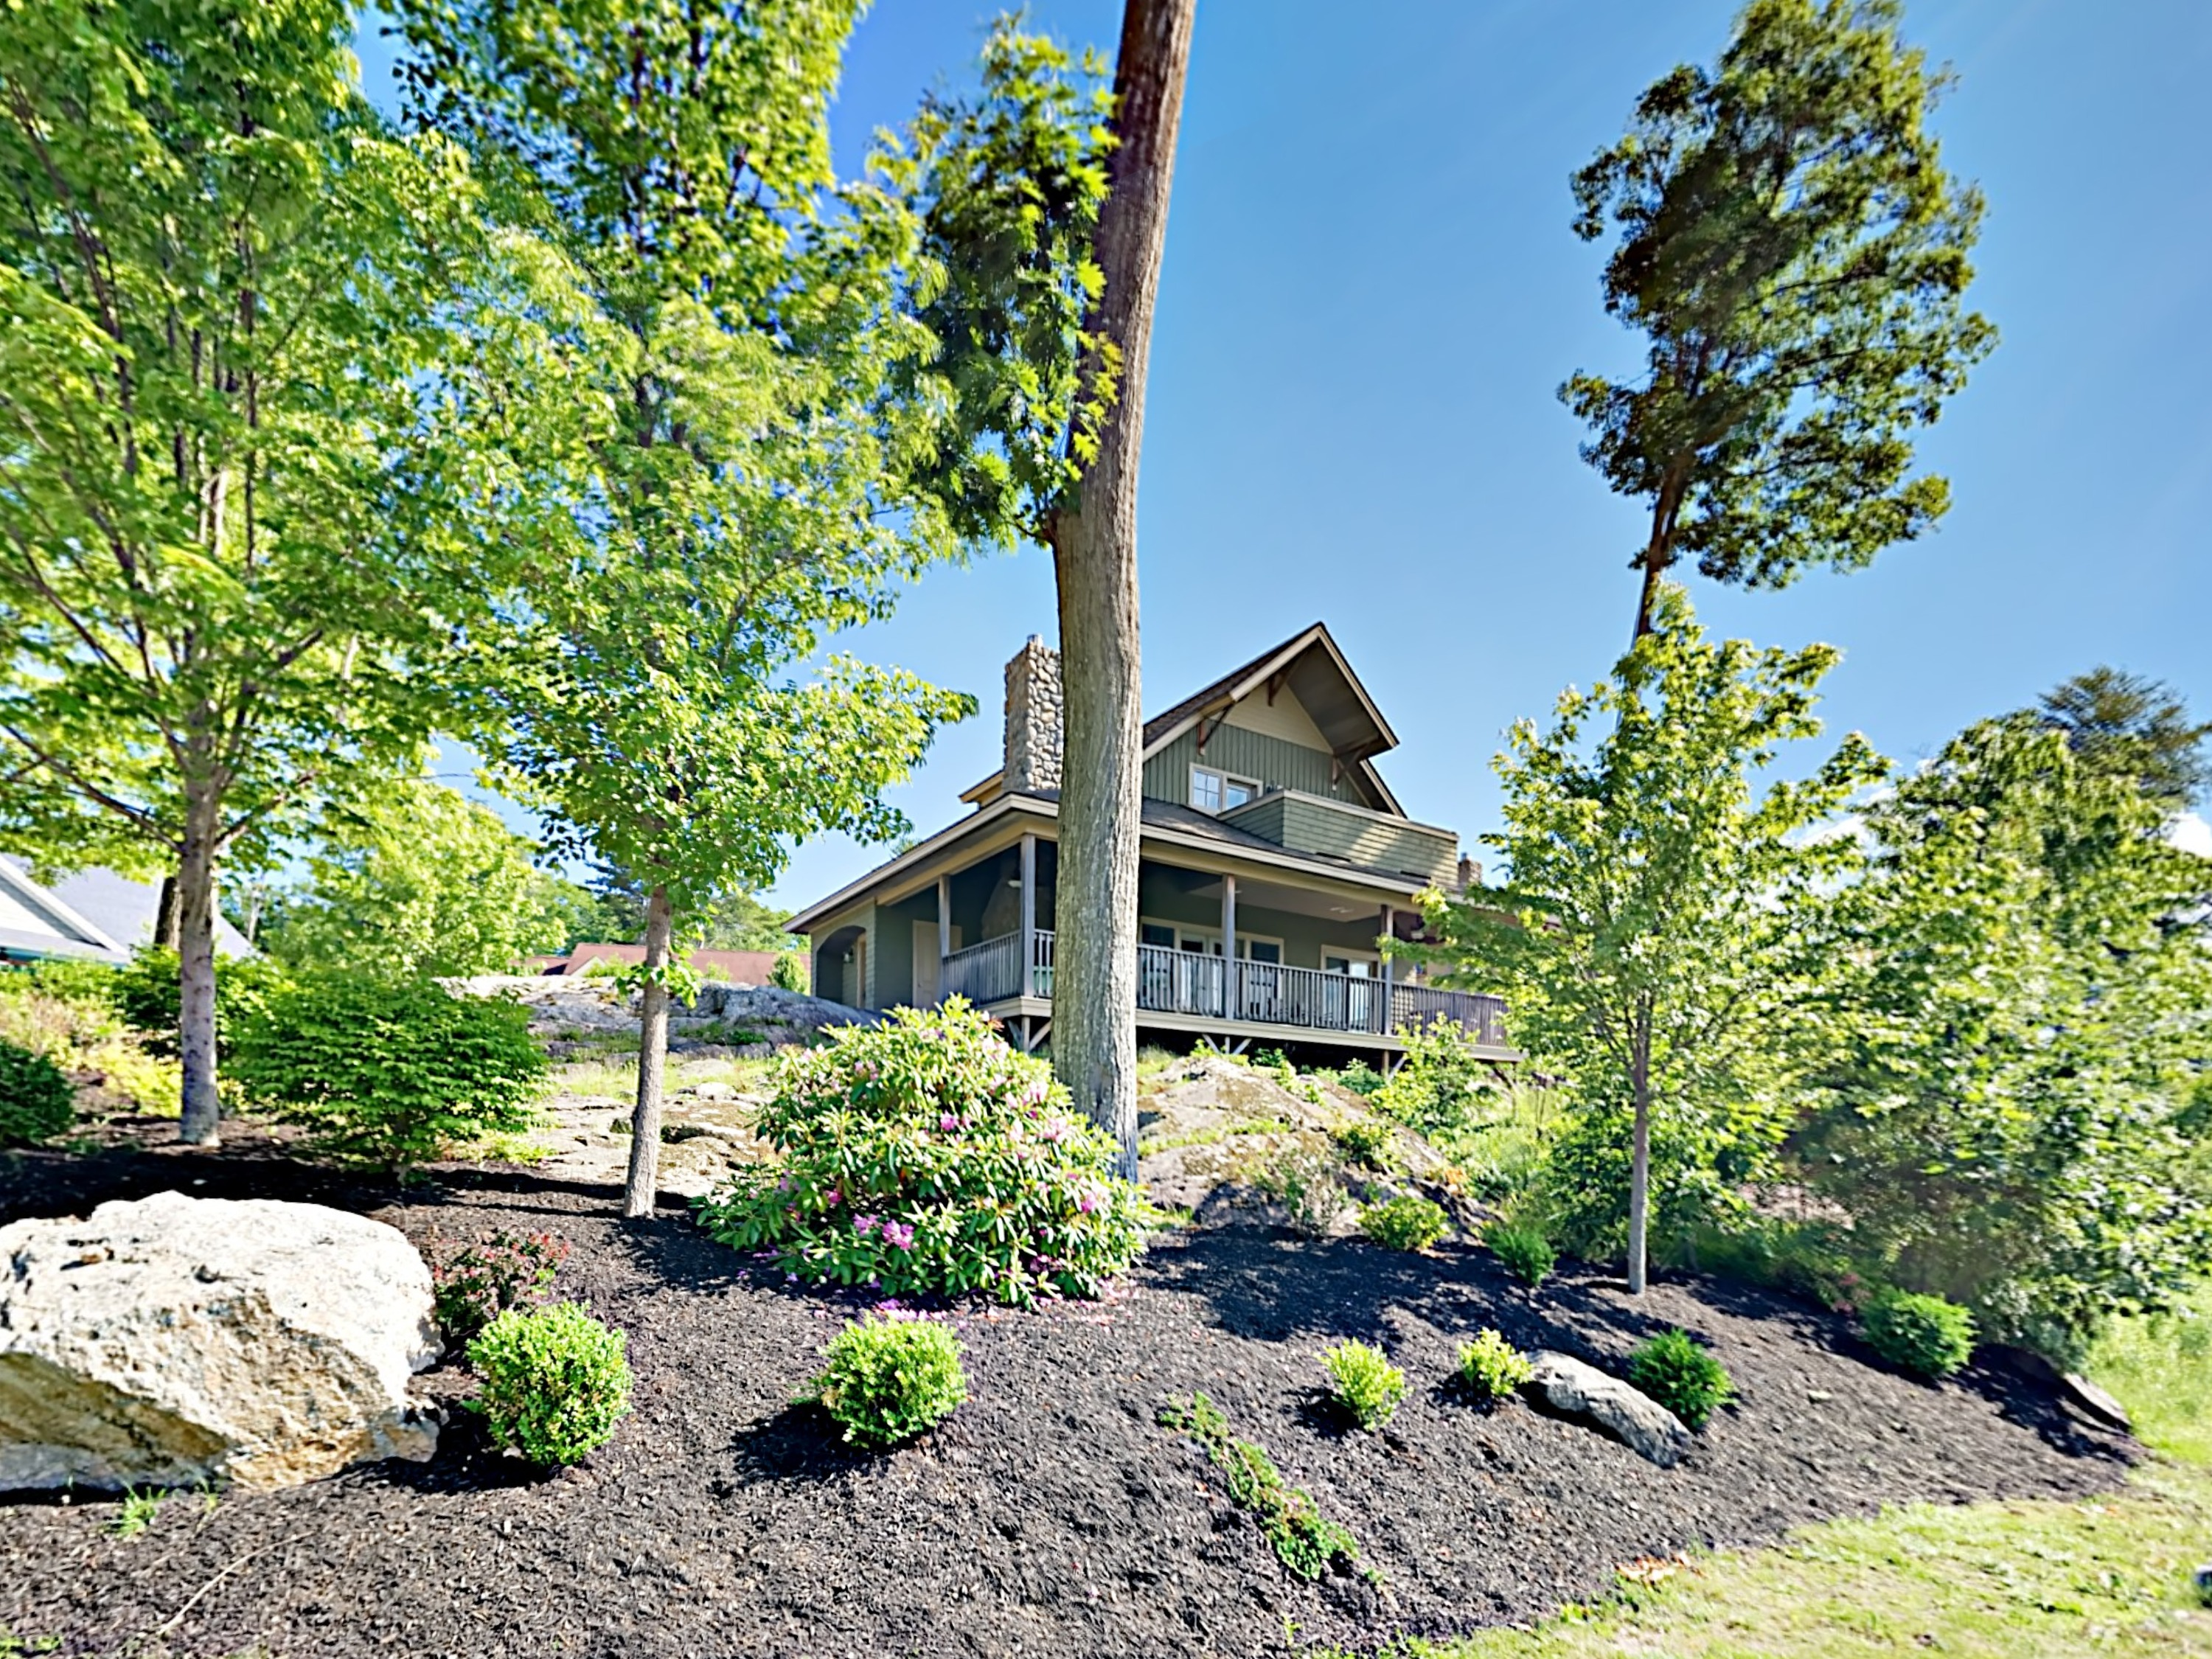 Edgecomb ME Vacation Rental Welcome to your